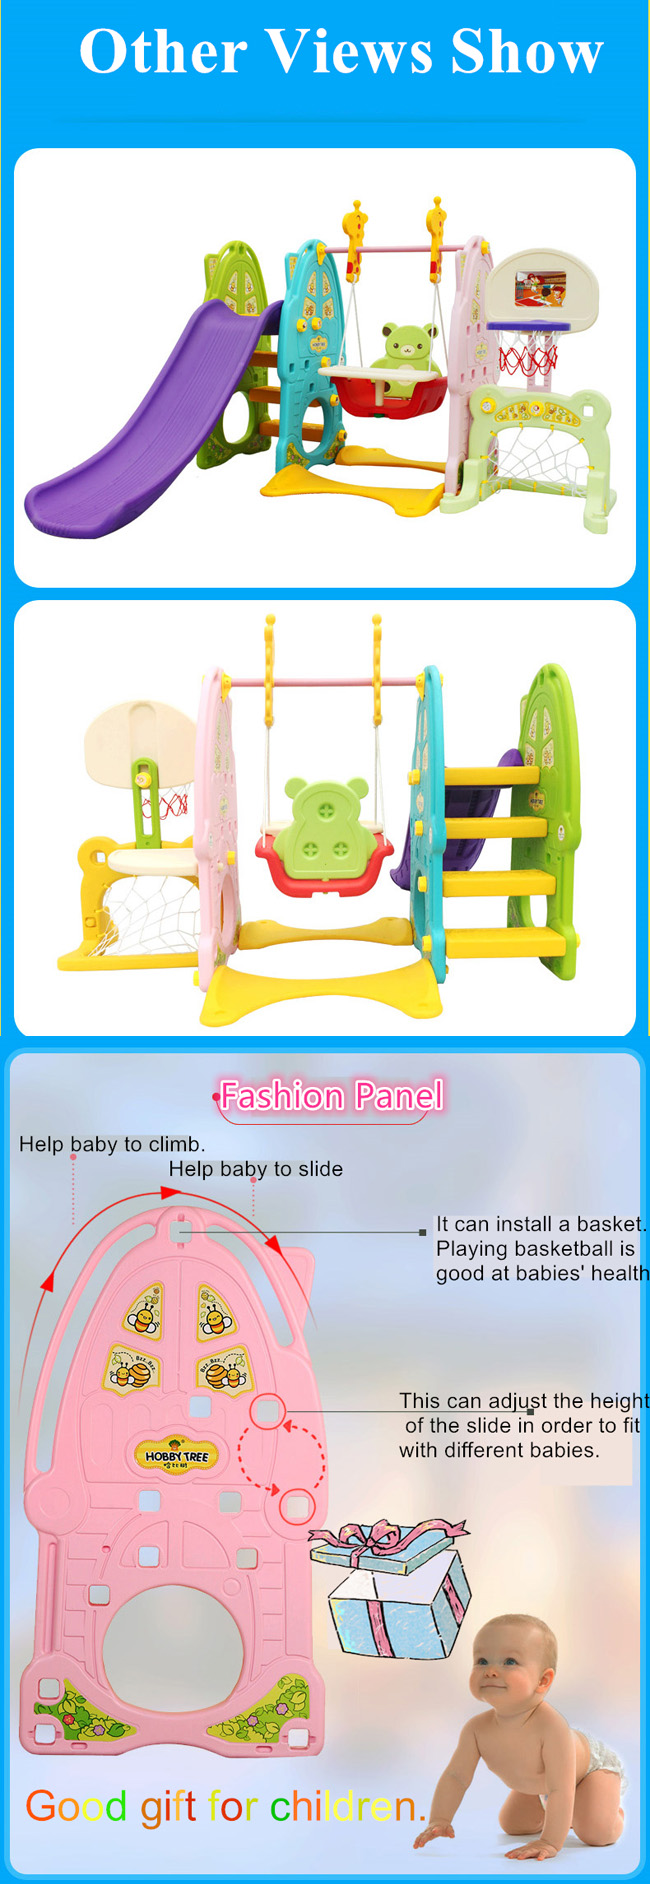 Functional Indoor Plastic Slide and Swing for Toddler